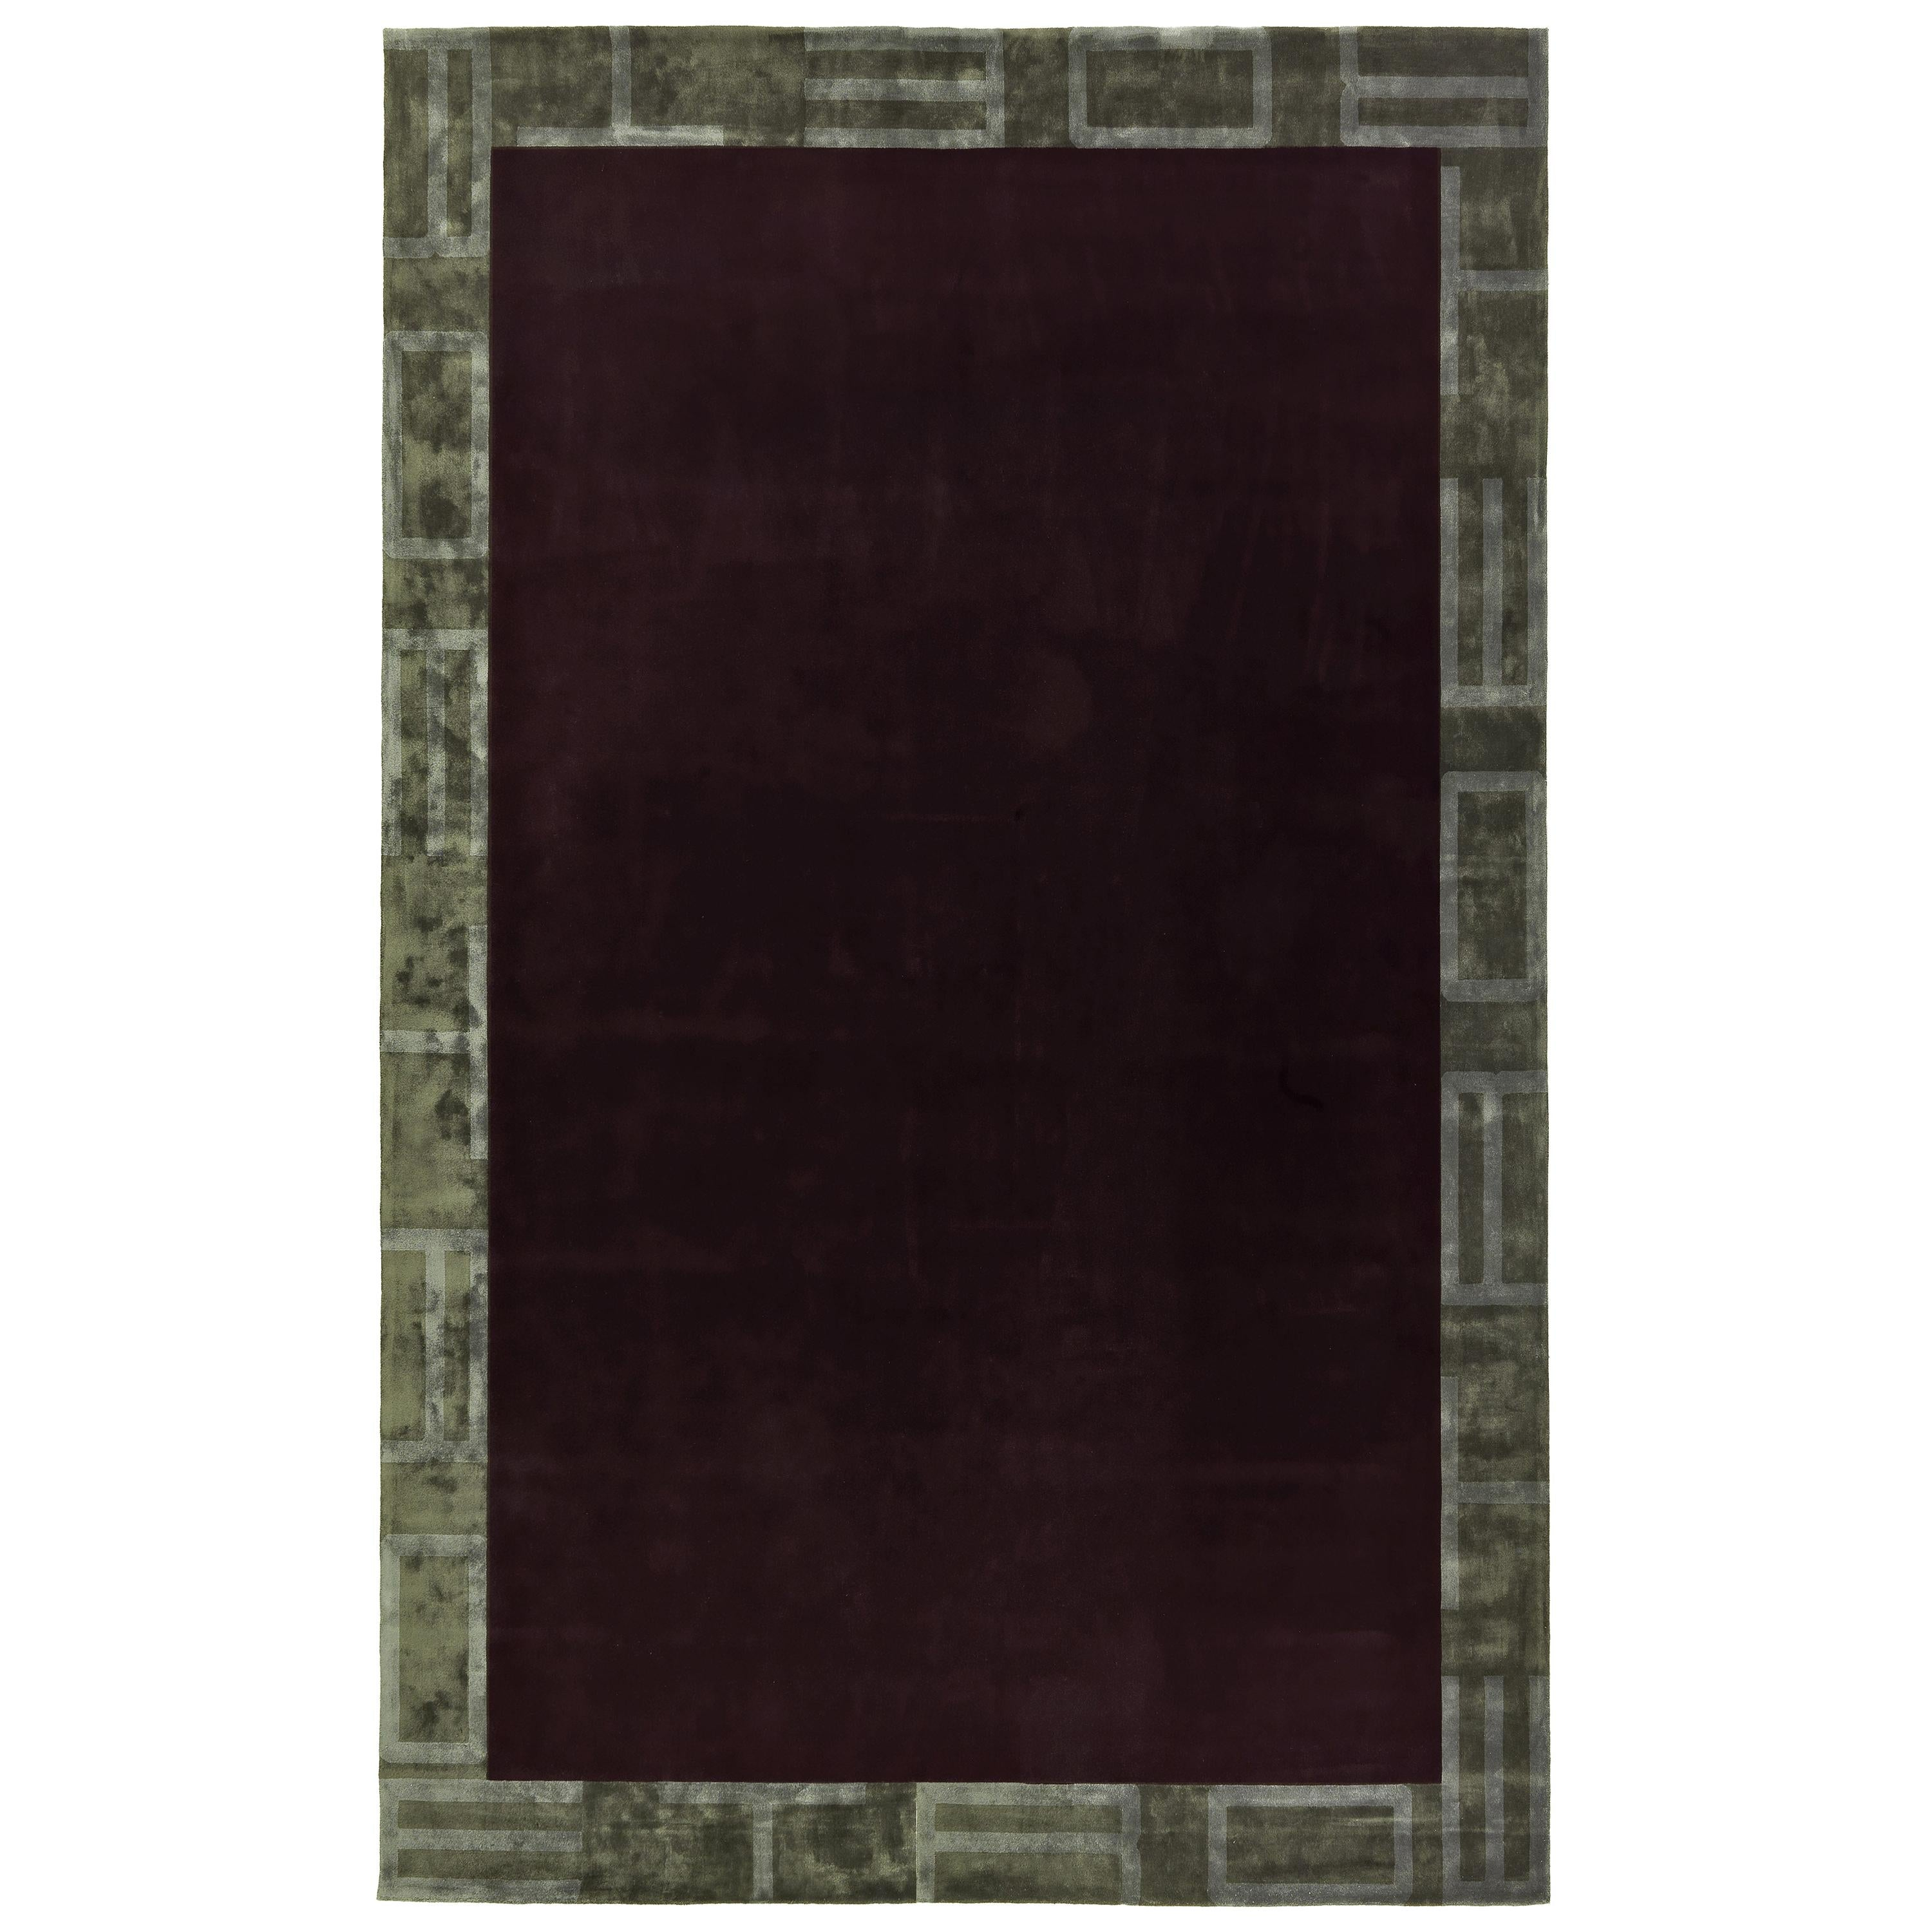 Etro Home Interiors Frame Rug in Hand-Tufted Wool